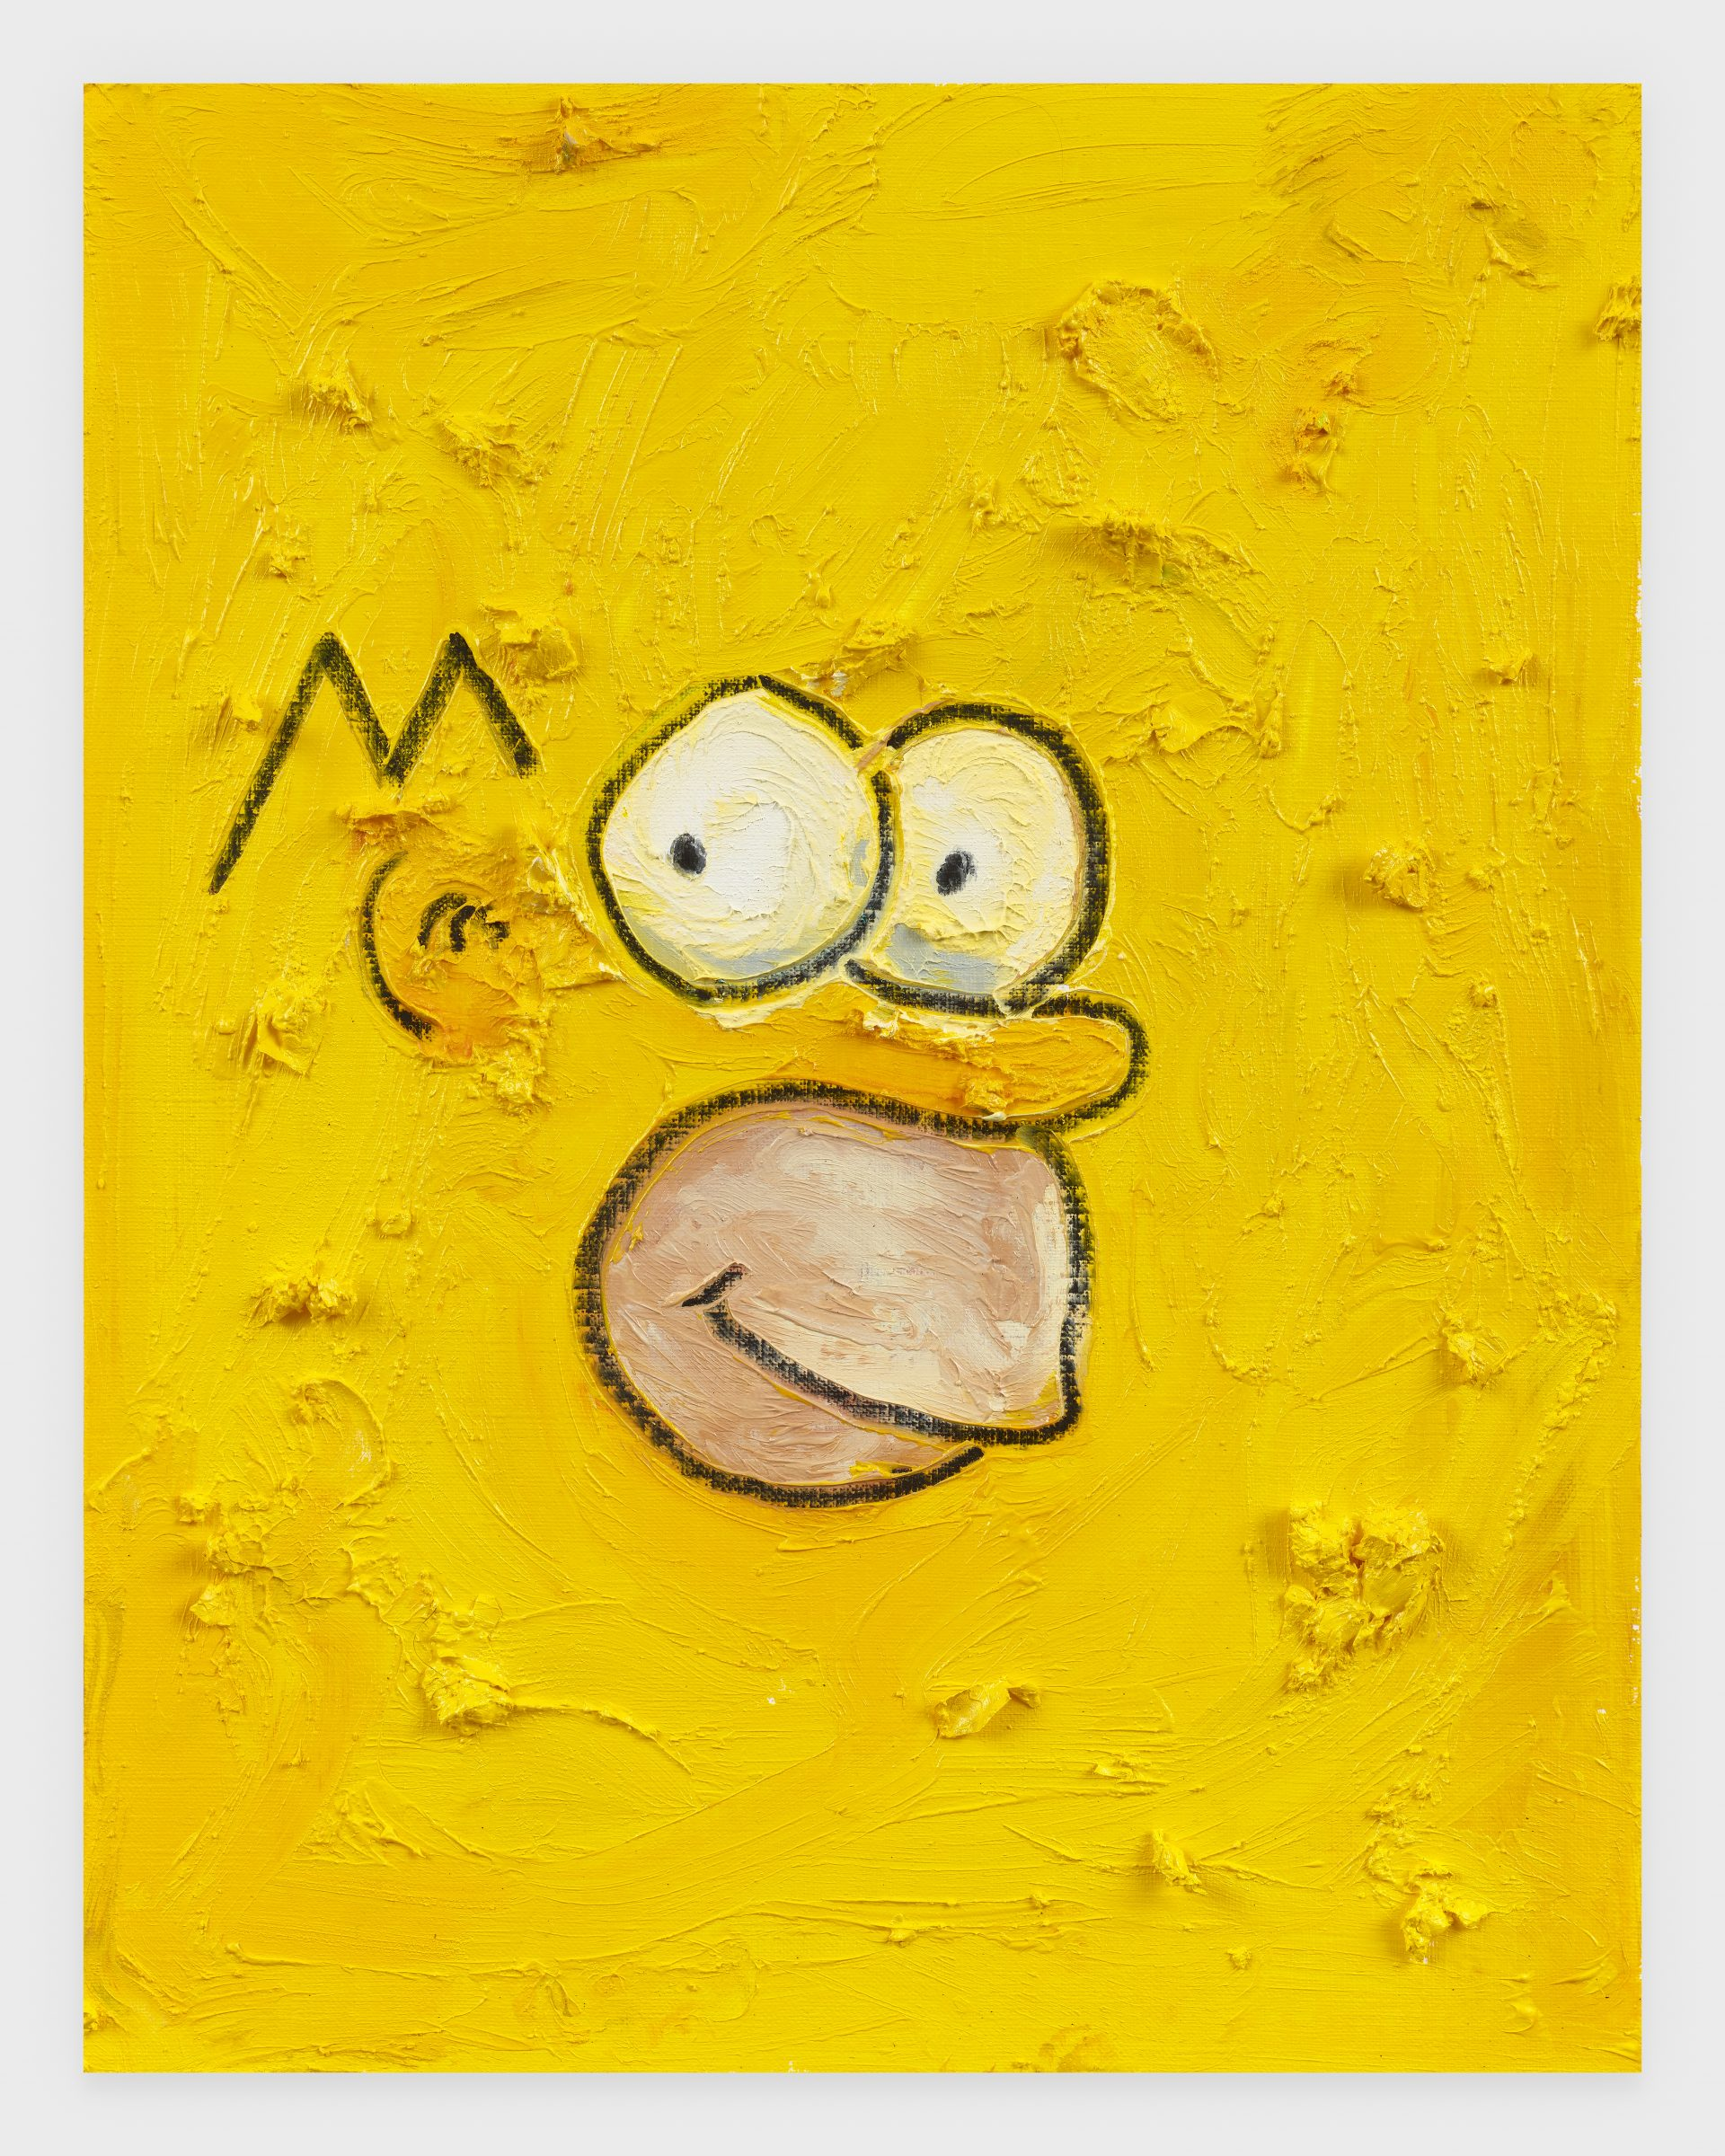 Homer, 2020, Oil stick on archival paper, 11 x 14 inches